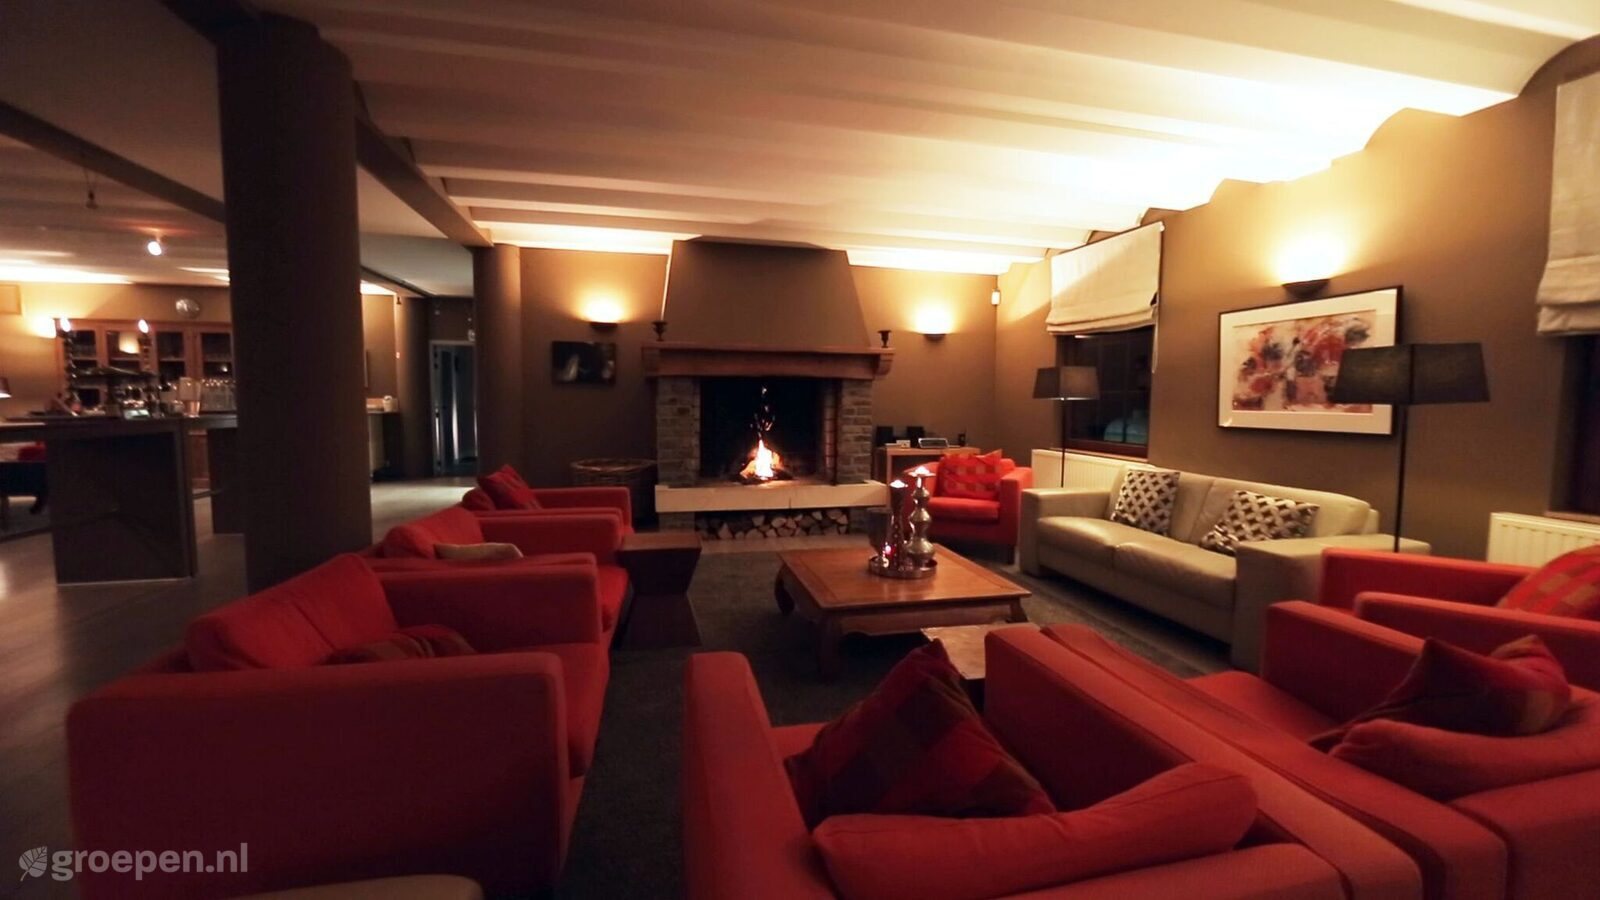 Group accommodation Ortho, La Roche-en-Ardenne